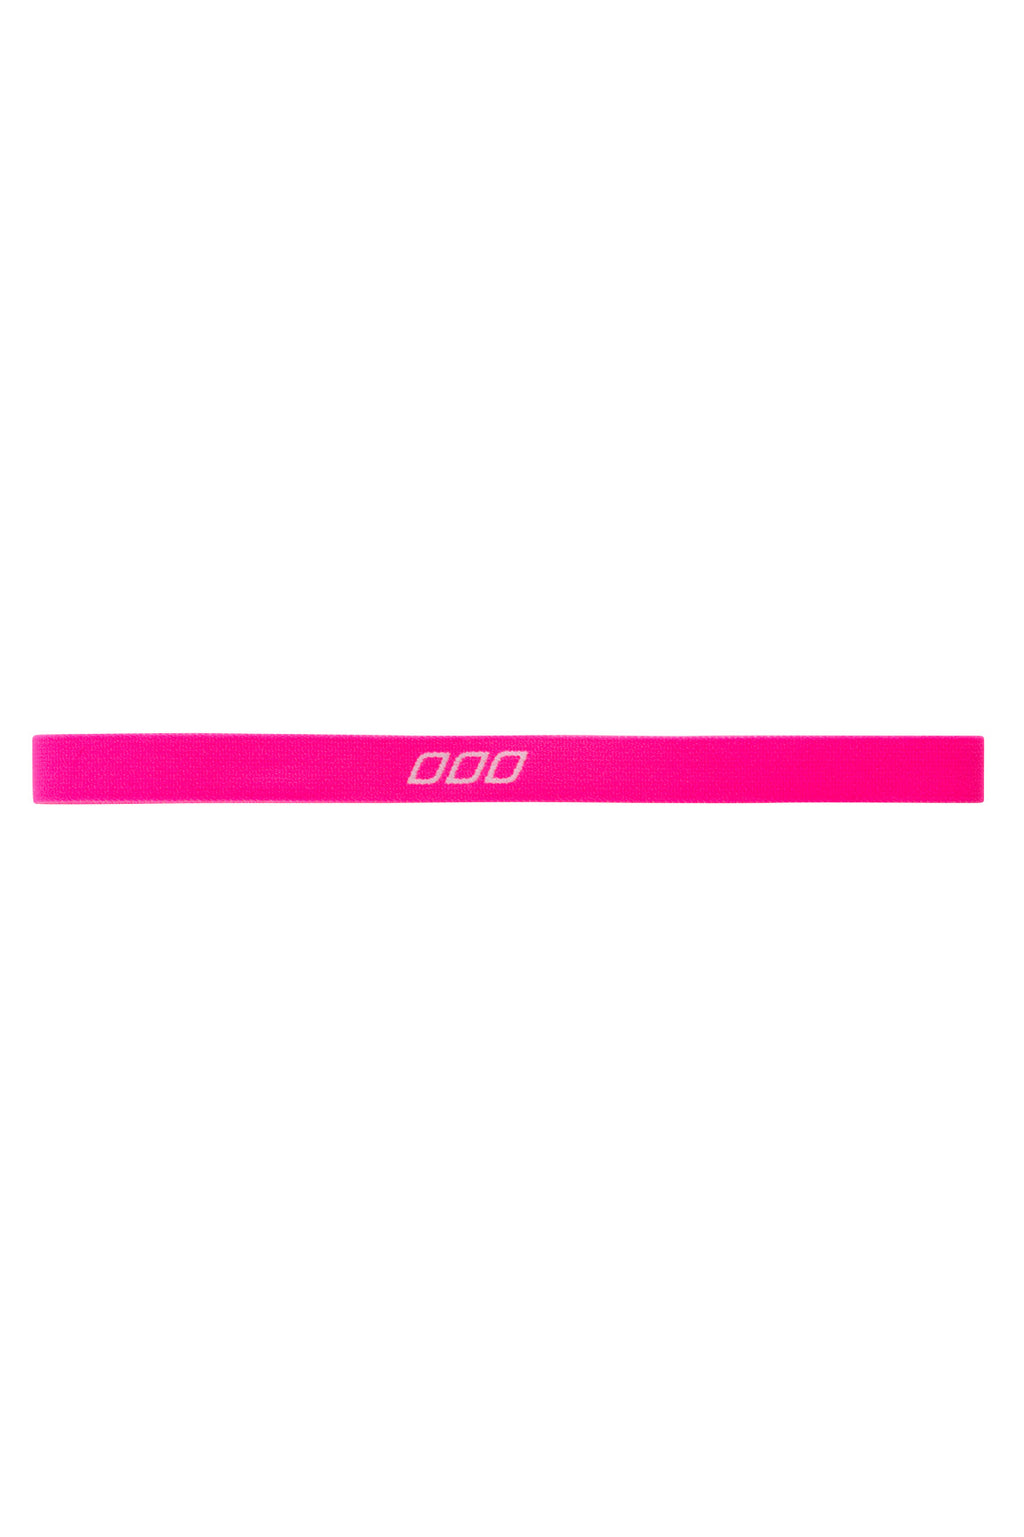 Billie Headband Candyland Pink - Final Sale - Final Sale